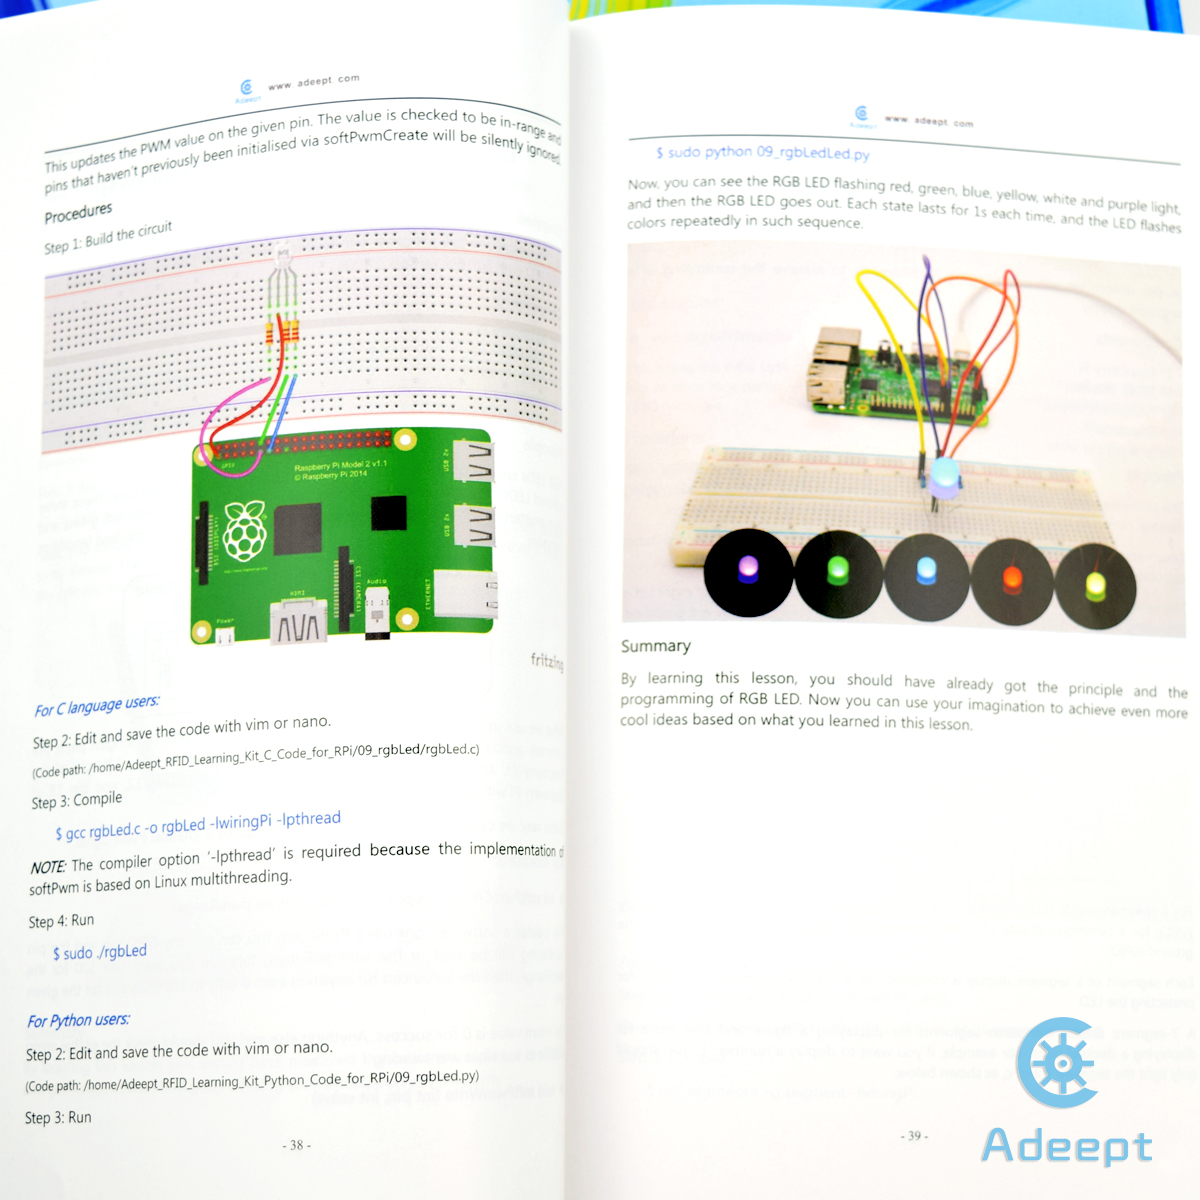 Adeept Rfid Starter Kit For Raspberry Pi 3 2 Model B Python With Wiringpi Pwm Led This Is An Learning Rc522 Module Some Common Electronic Components And Sensors Are Included